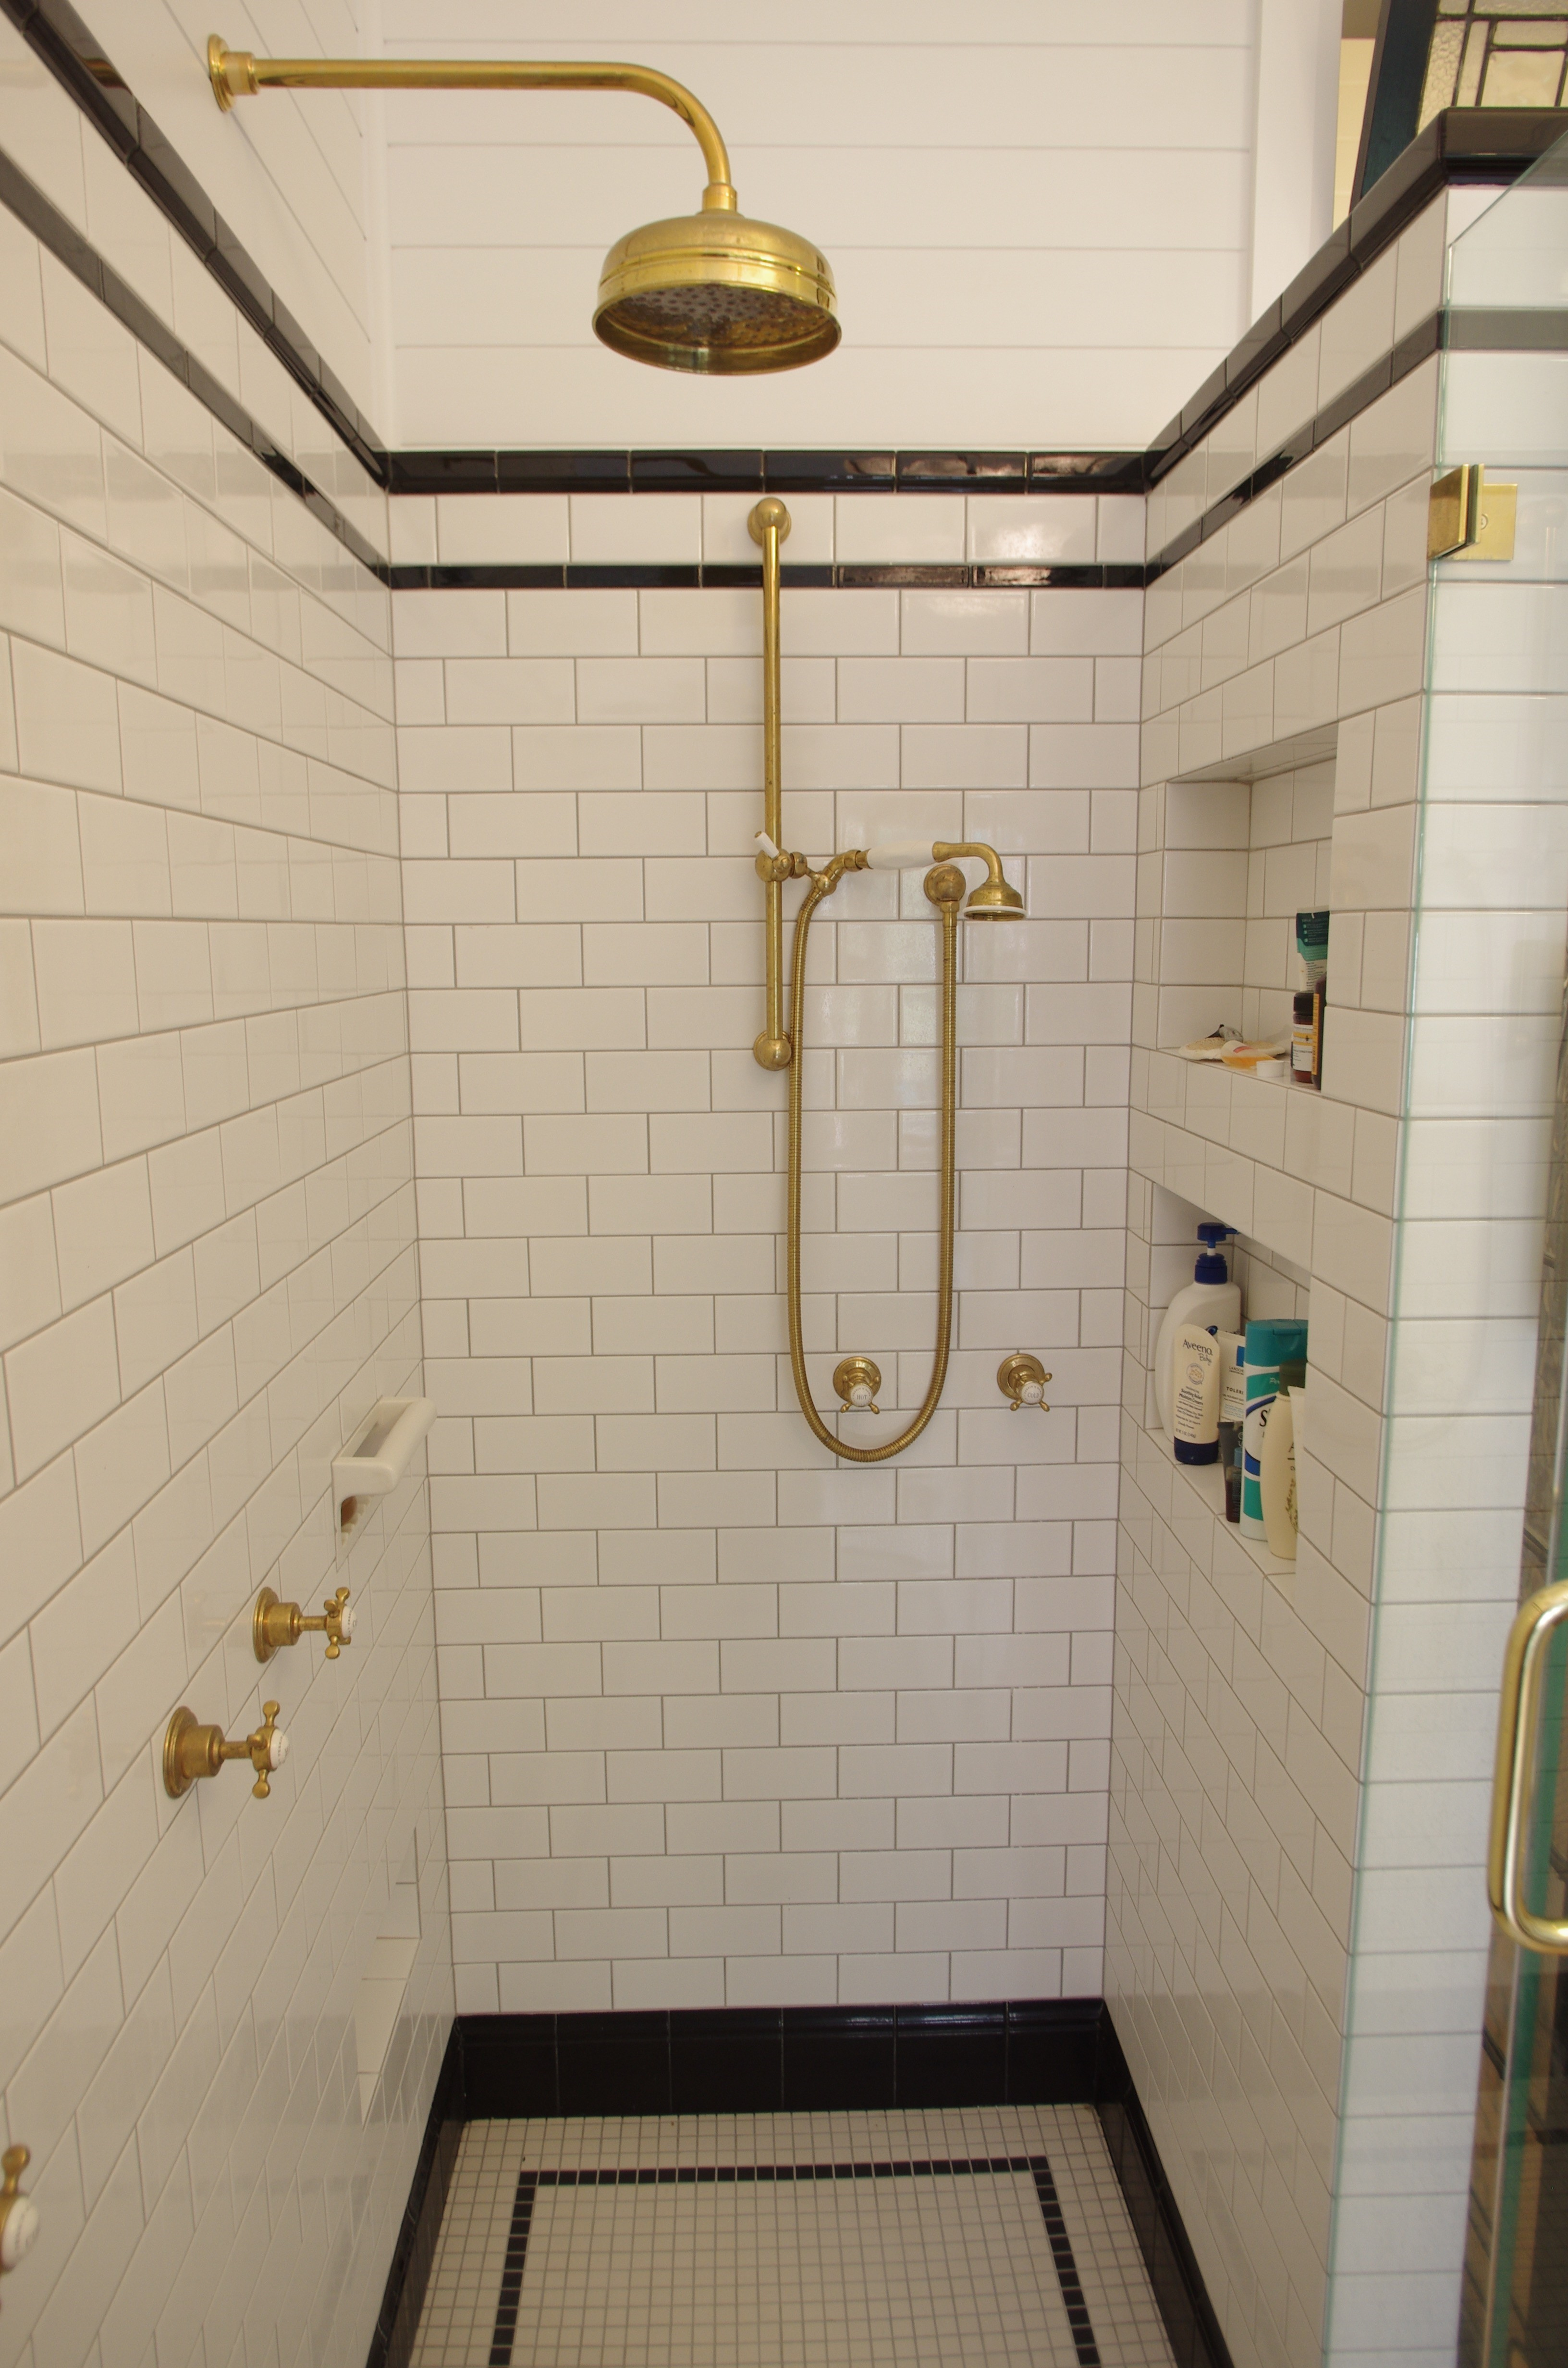 Dorable Federation Bathroom Tiles Frieze - Bathroom ideas designs ...